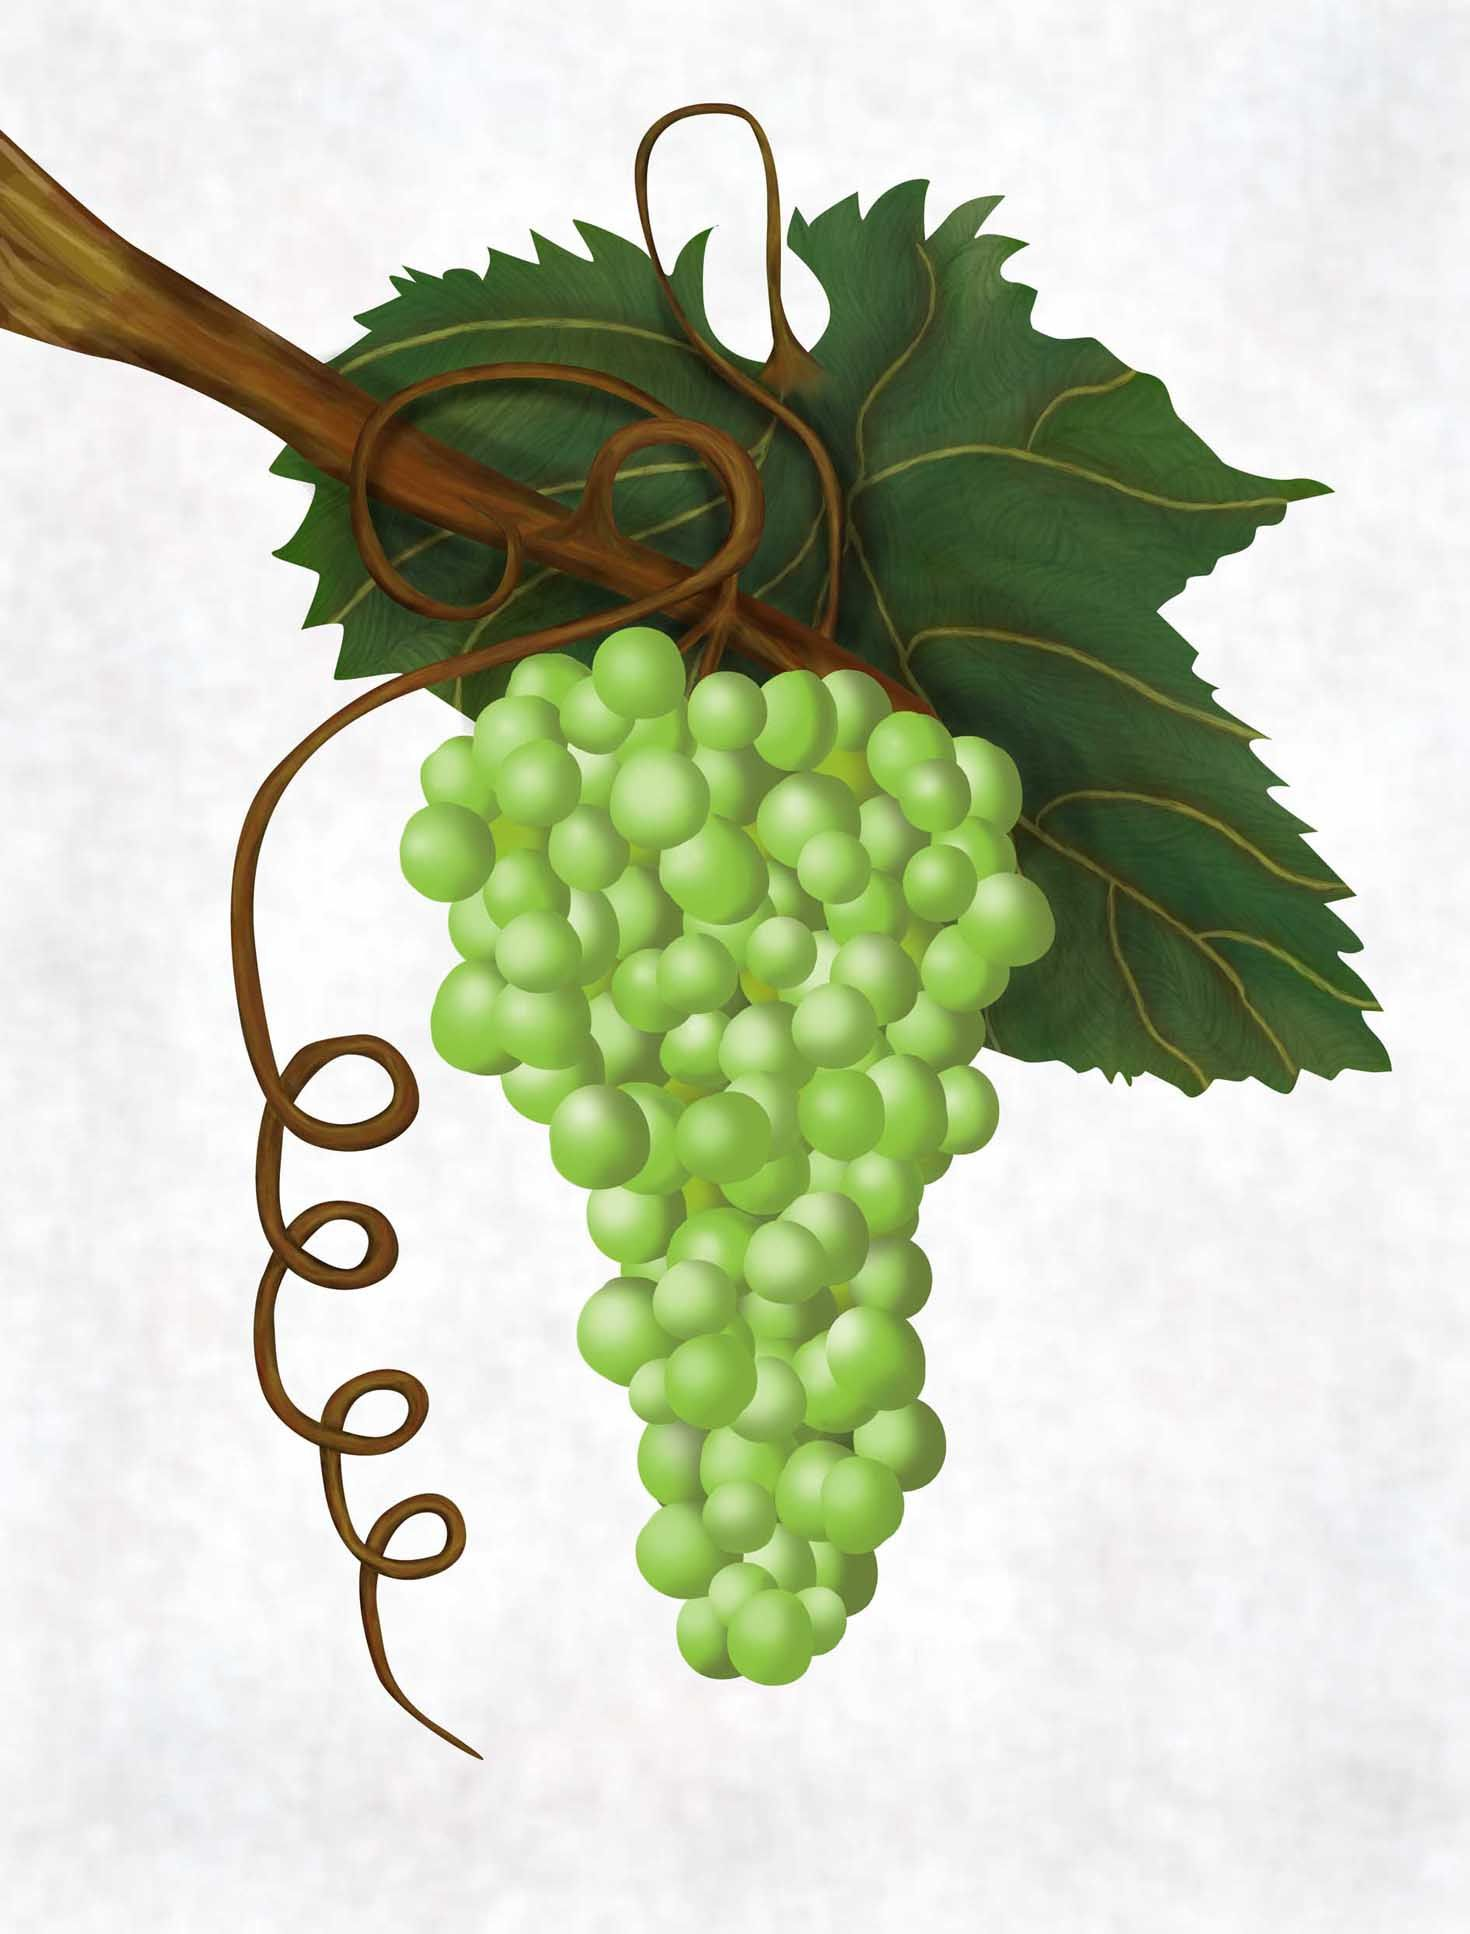 Grapes Are Used To Symbolize Abundance In Food And In Wealth For